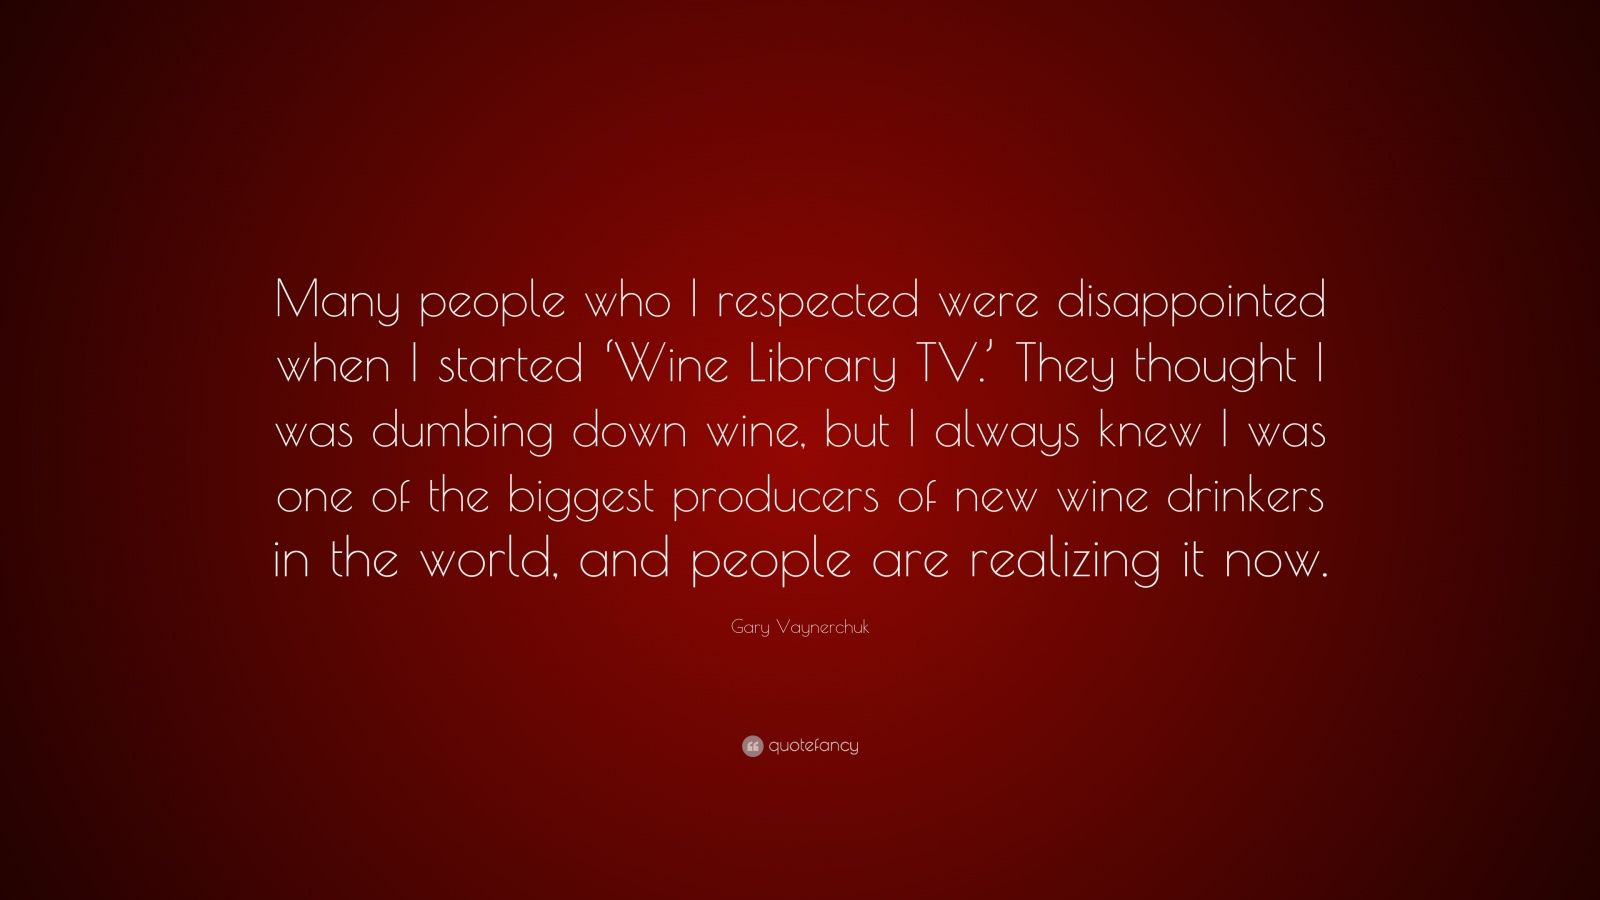 """Gary Vaynerchuk Quote: """"Many people who I respected were disappointed when I started 'Wine Library TV.' They thought I was dumbing down wine, but I always knew I was one of the biggest producers of new wine drinkers in the world, and people are realizing it now."""""""